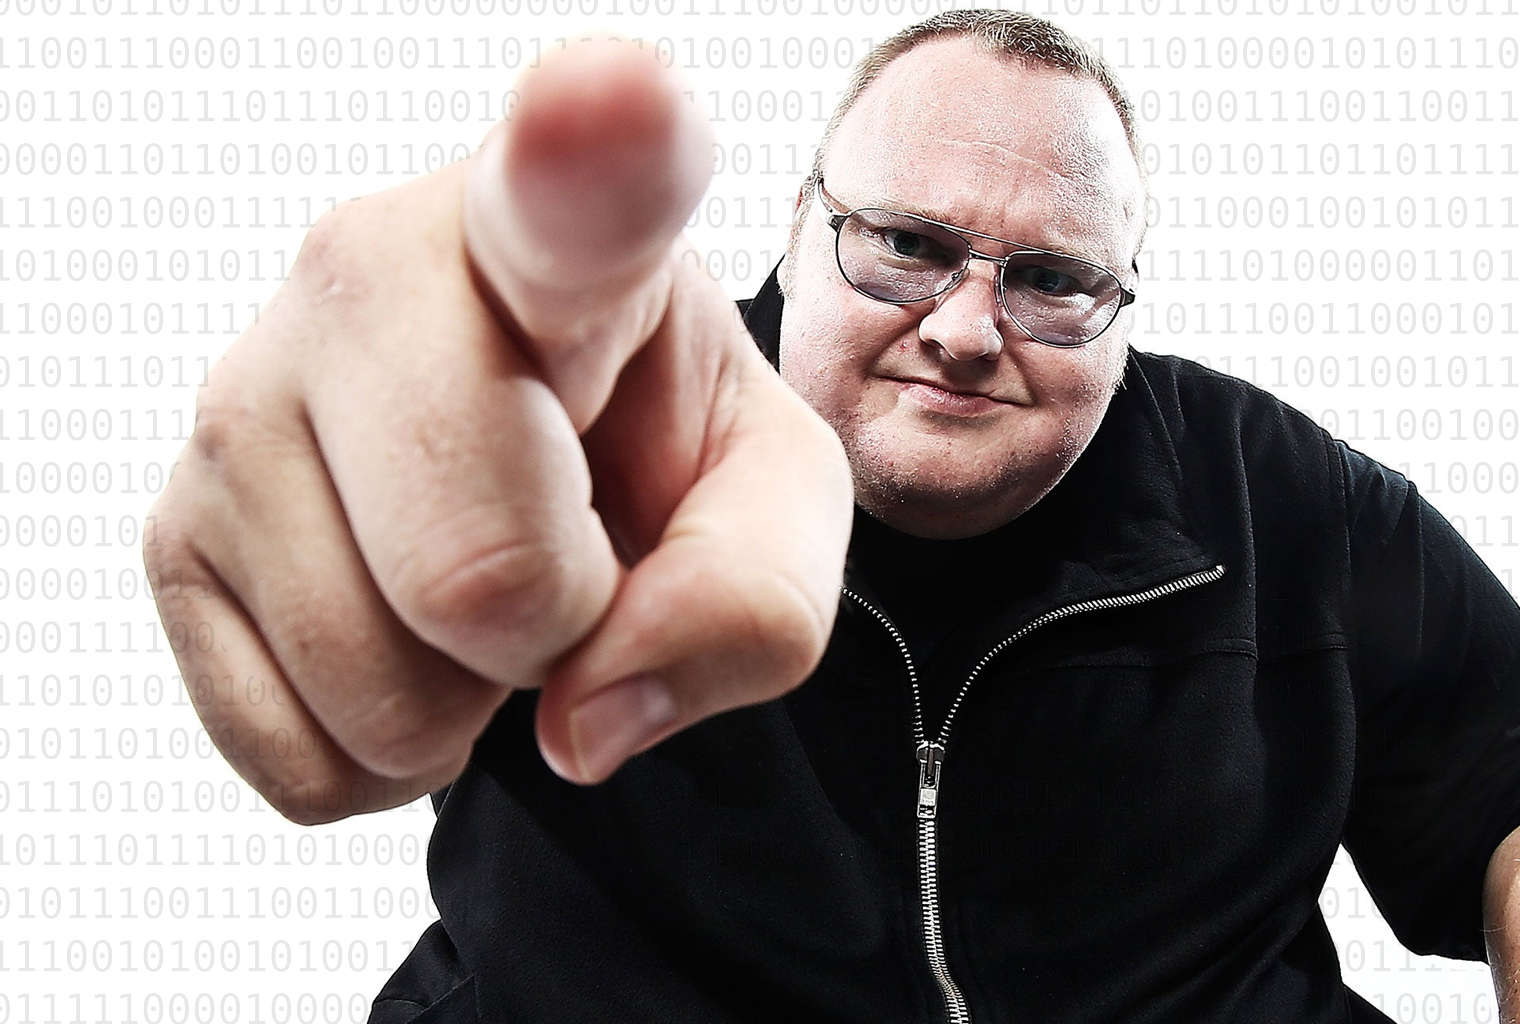 Venta de tokens de Kim Dotcom pospuesta por 'incertidumbre regulatoria'